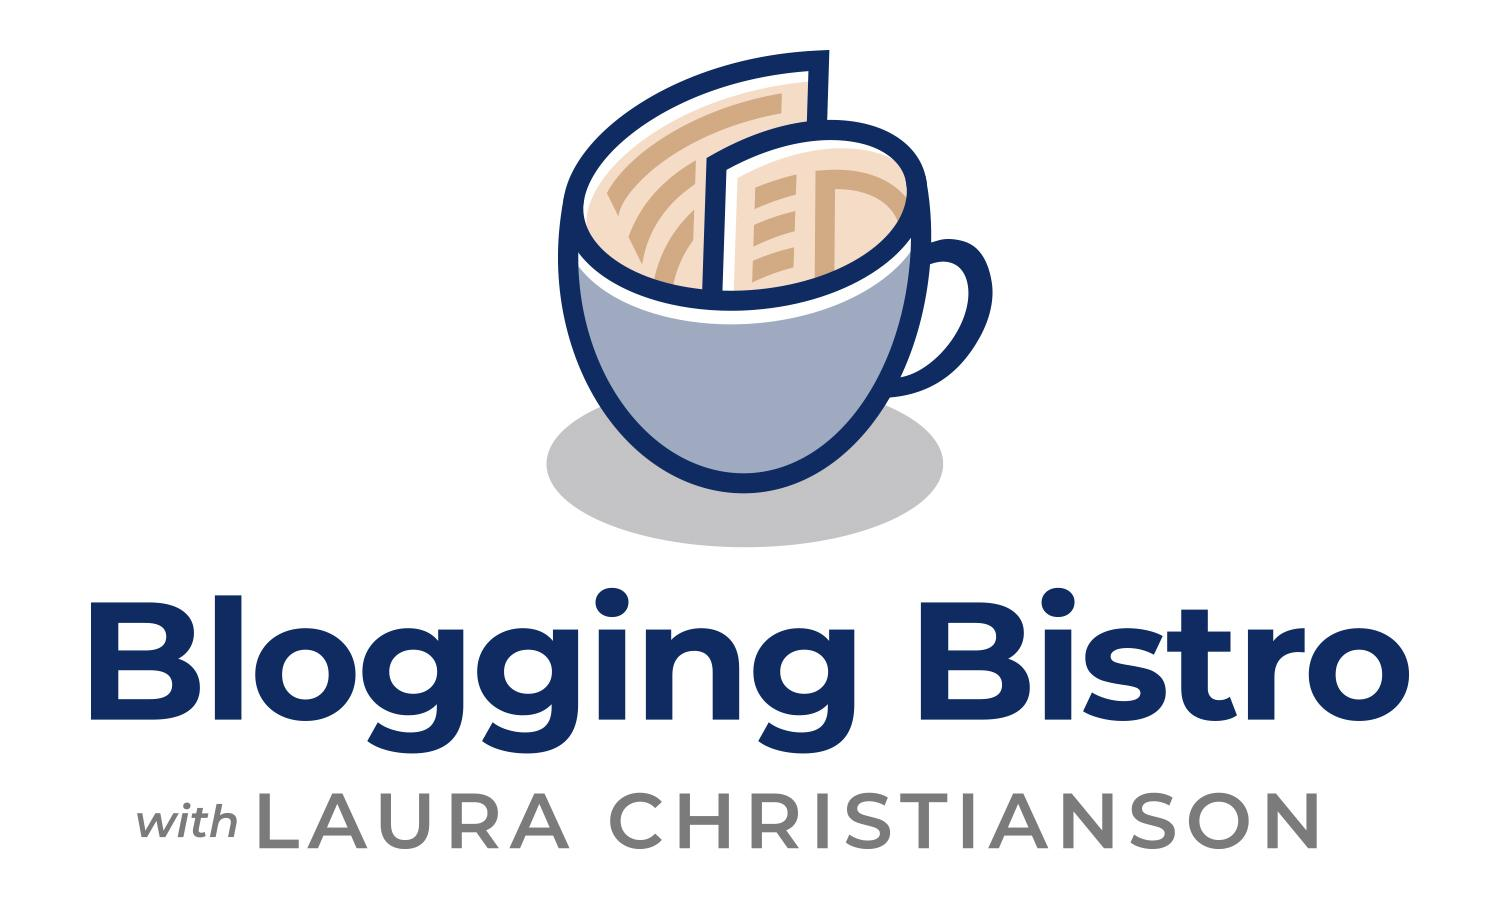 Blogging Bistro,  LLC